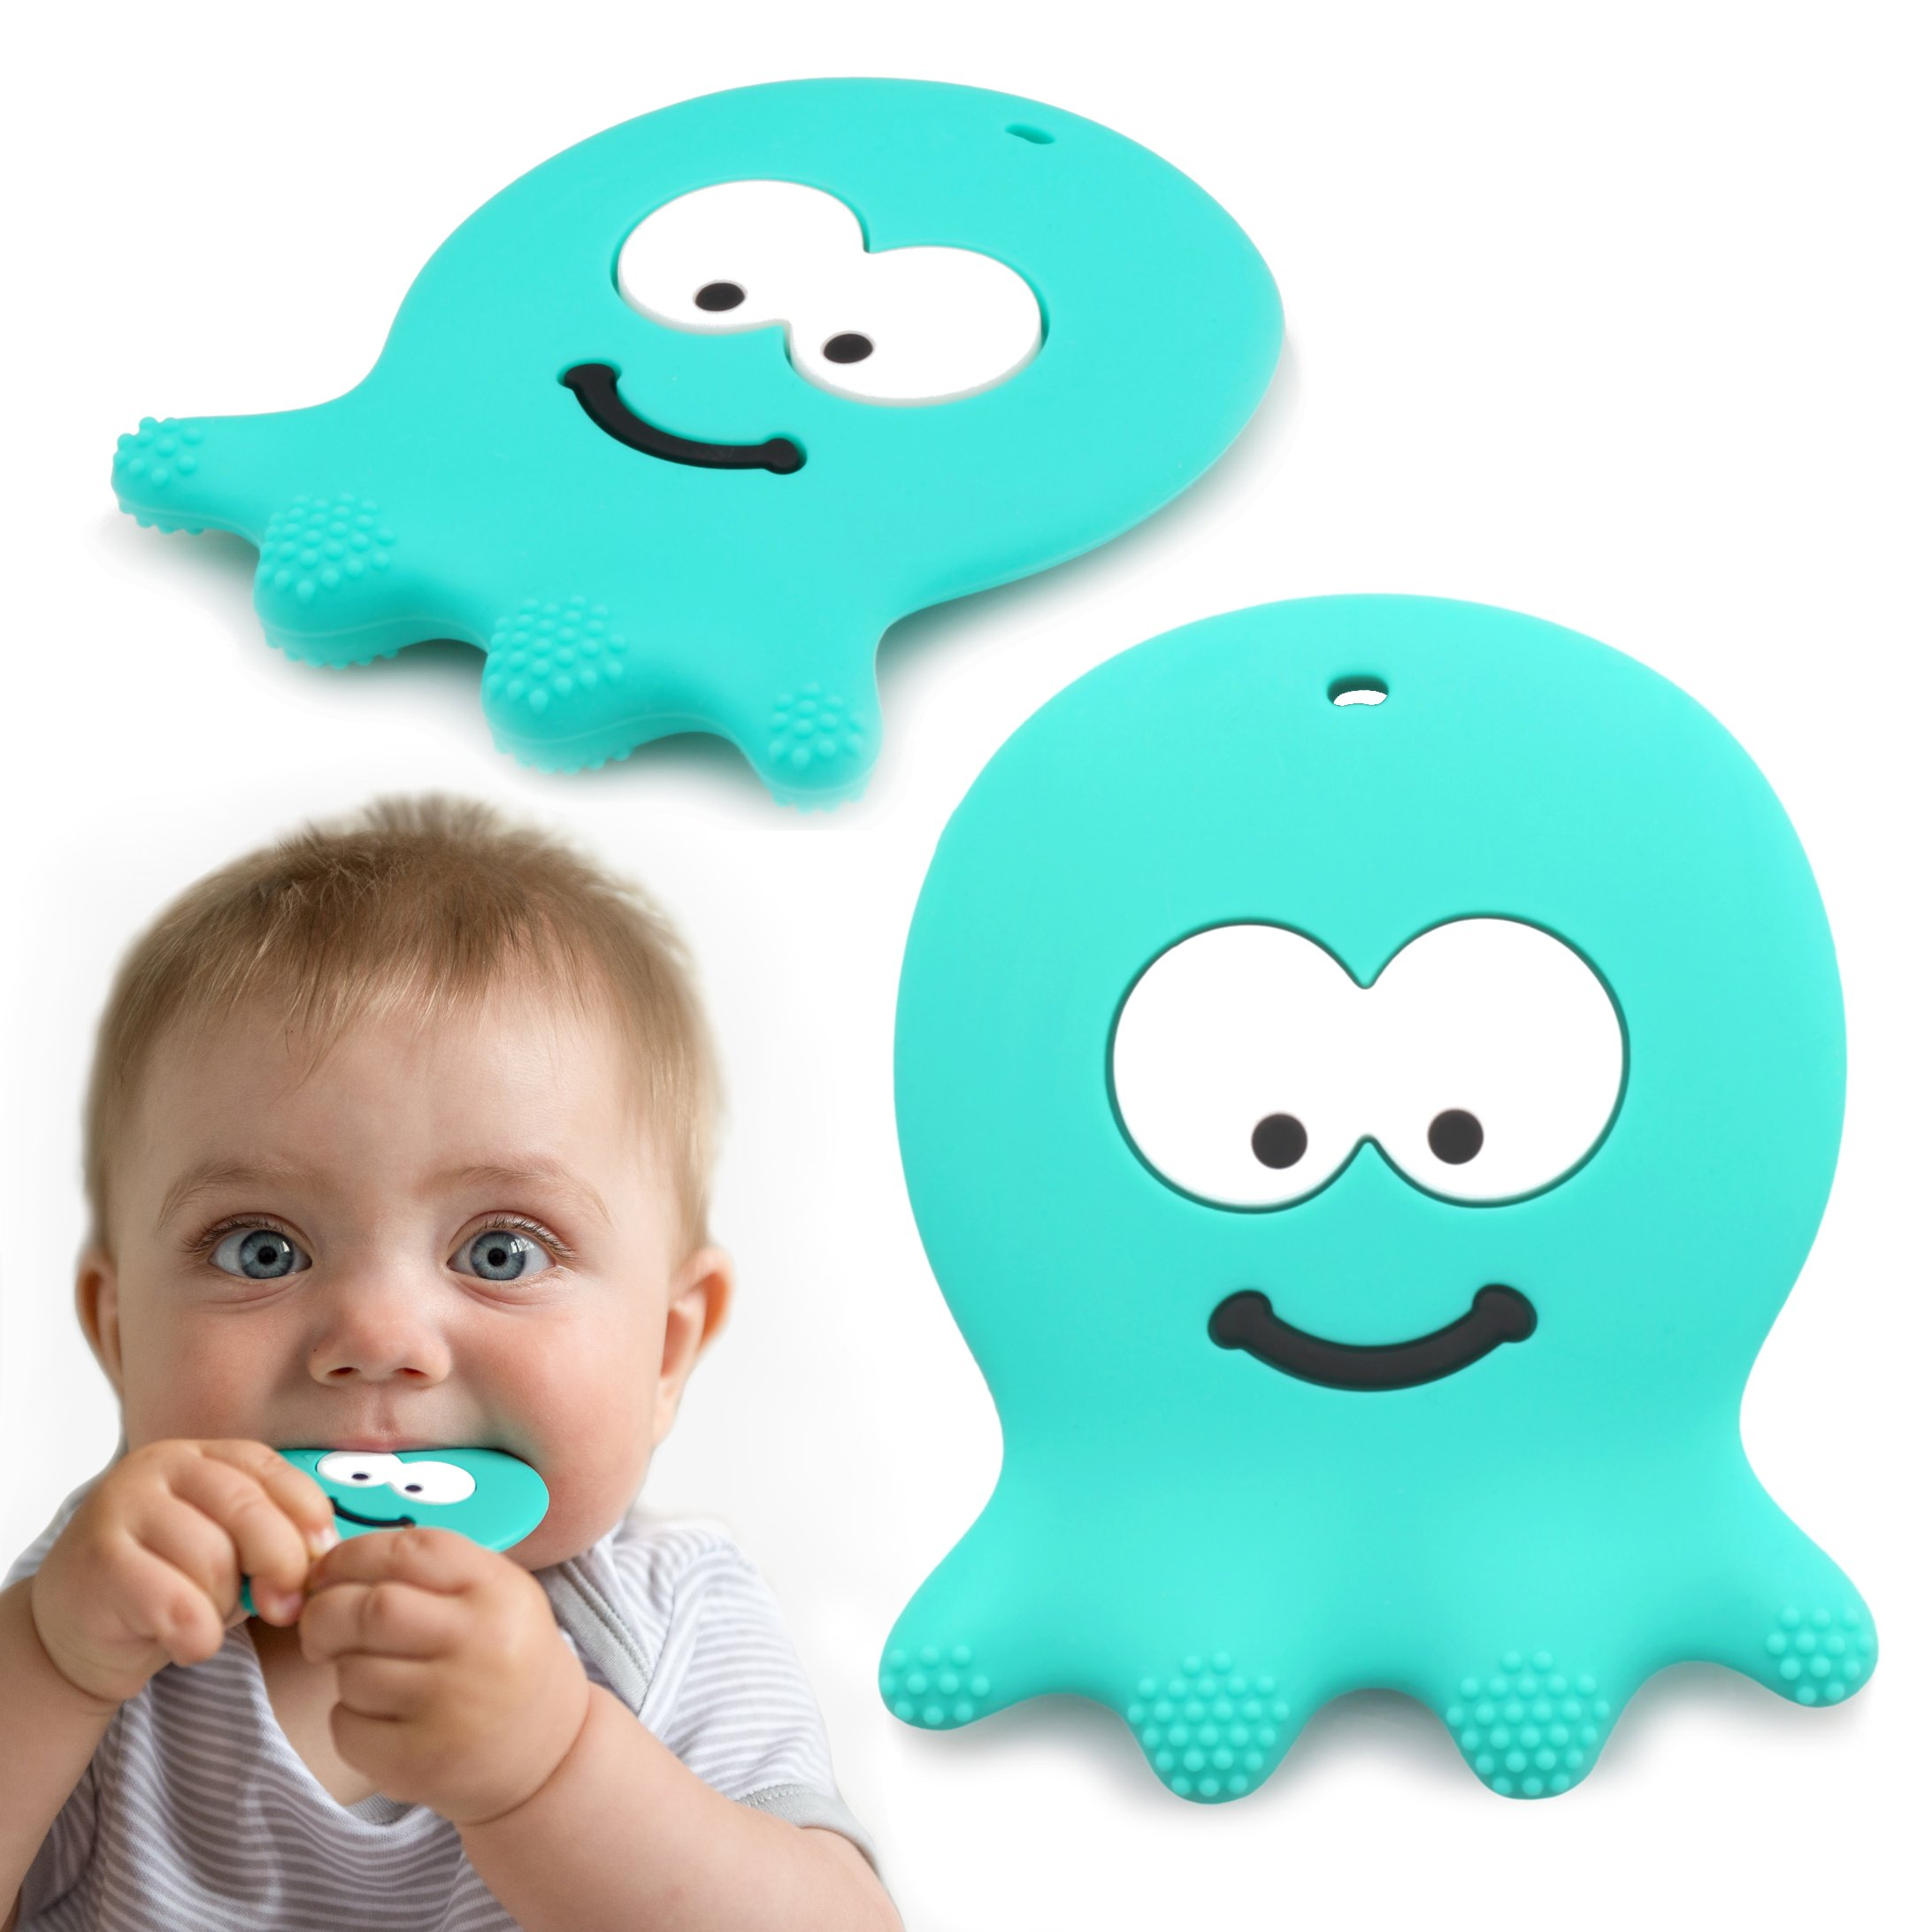 6 Month Old Baby Toys - Adorable Teething Octopus - Best Sensory Learning Teether For Girl Or Boy Infant Newborn 3 / 12 Months / 1 Year Old - BPA Free Silicone - Cool Baby Shower And Easter Gifts